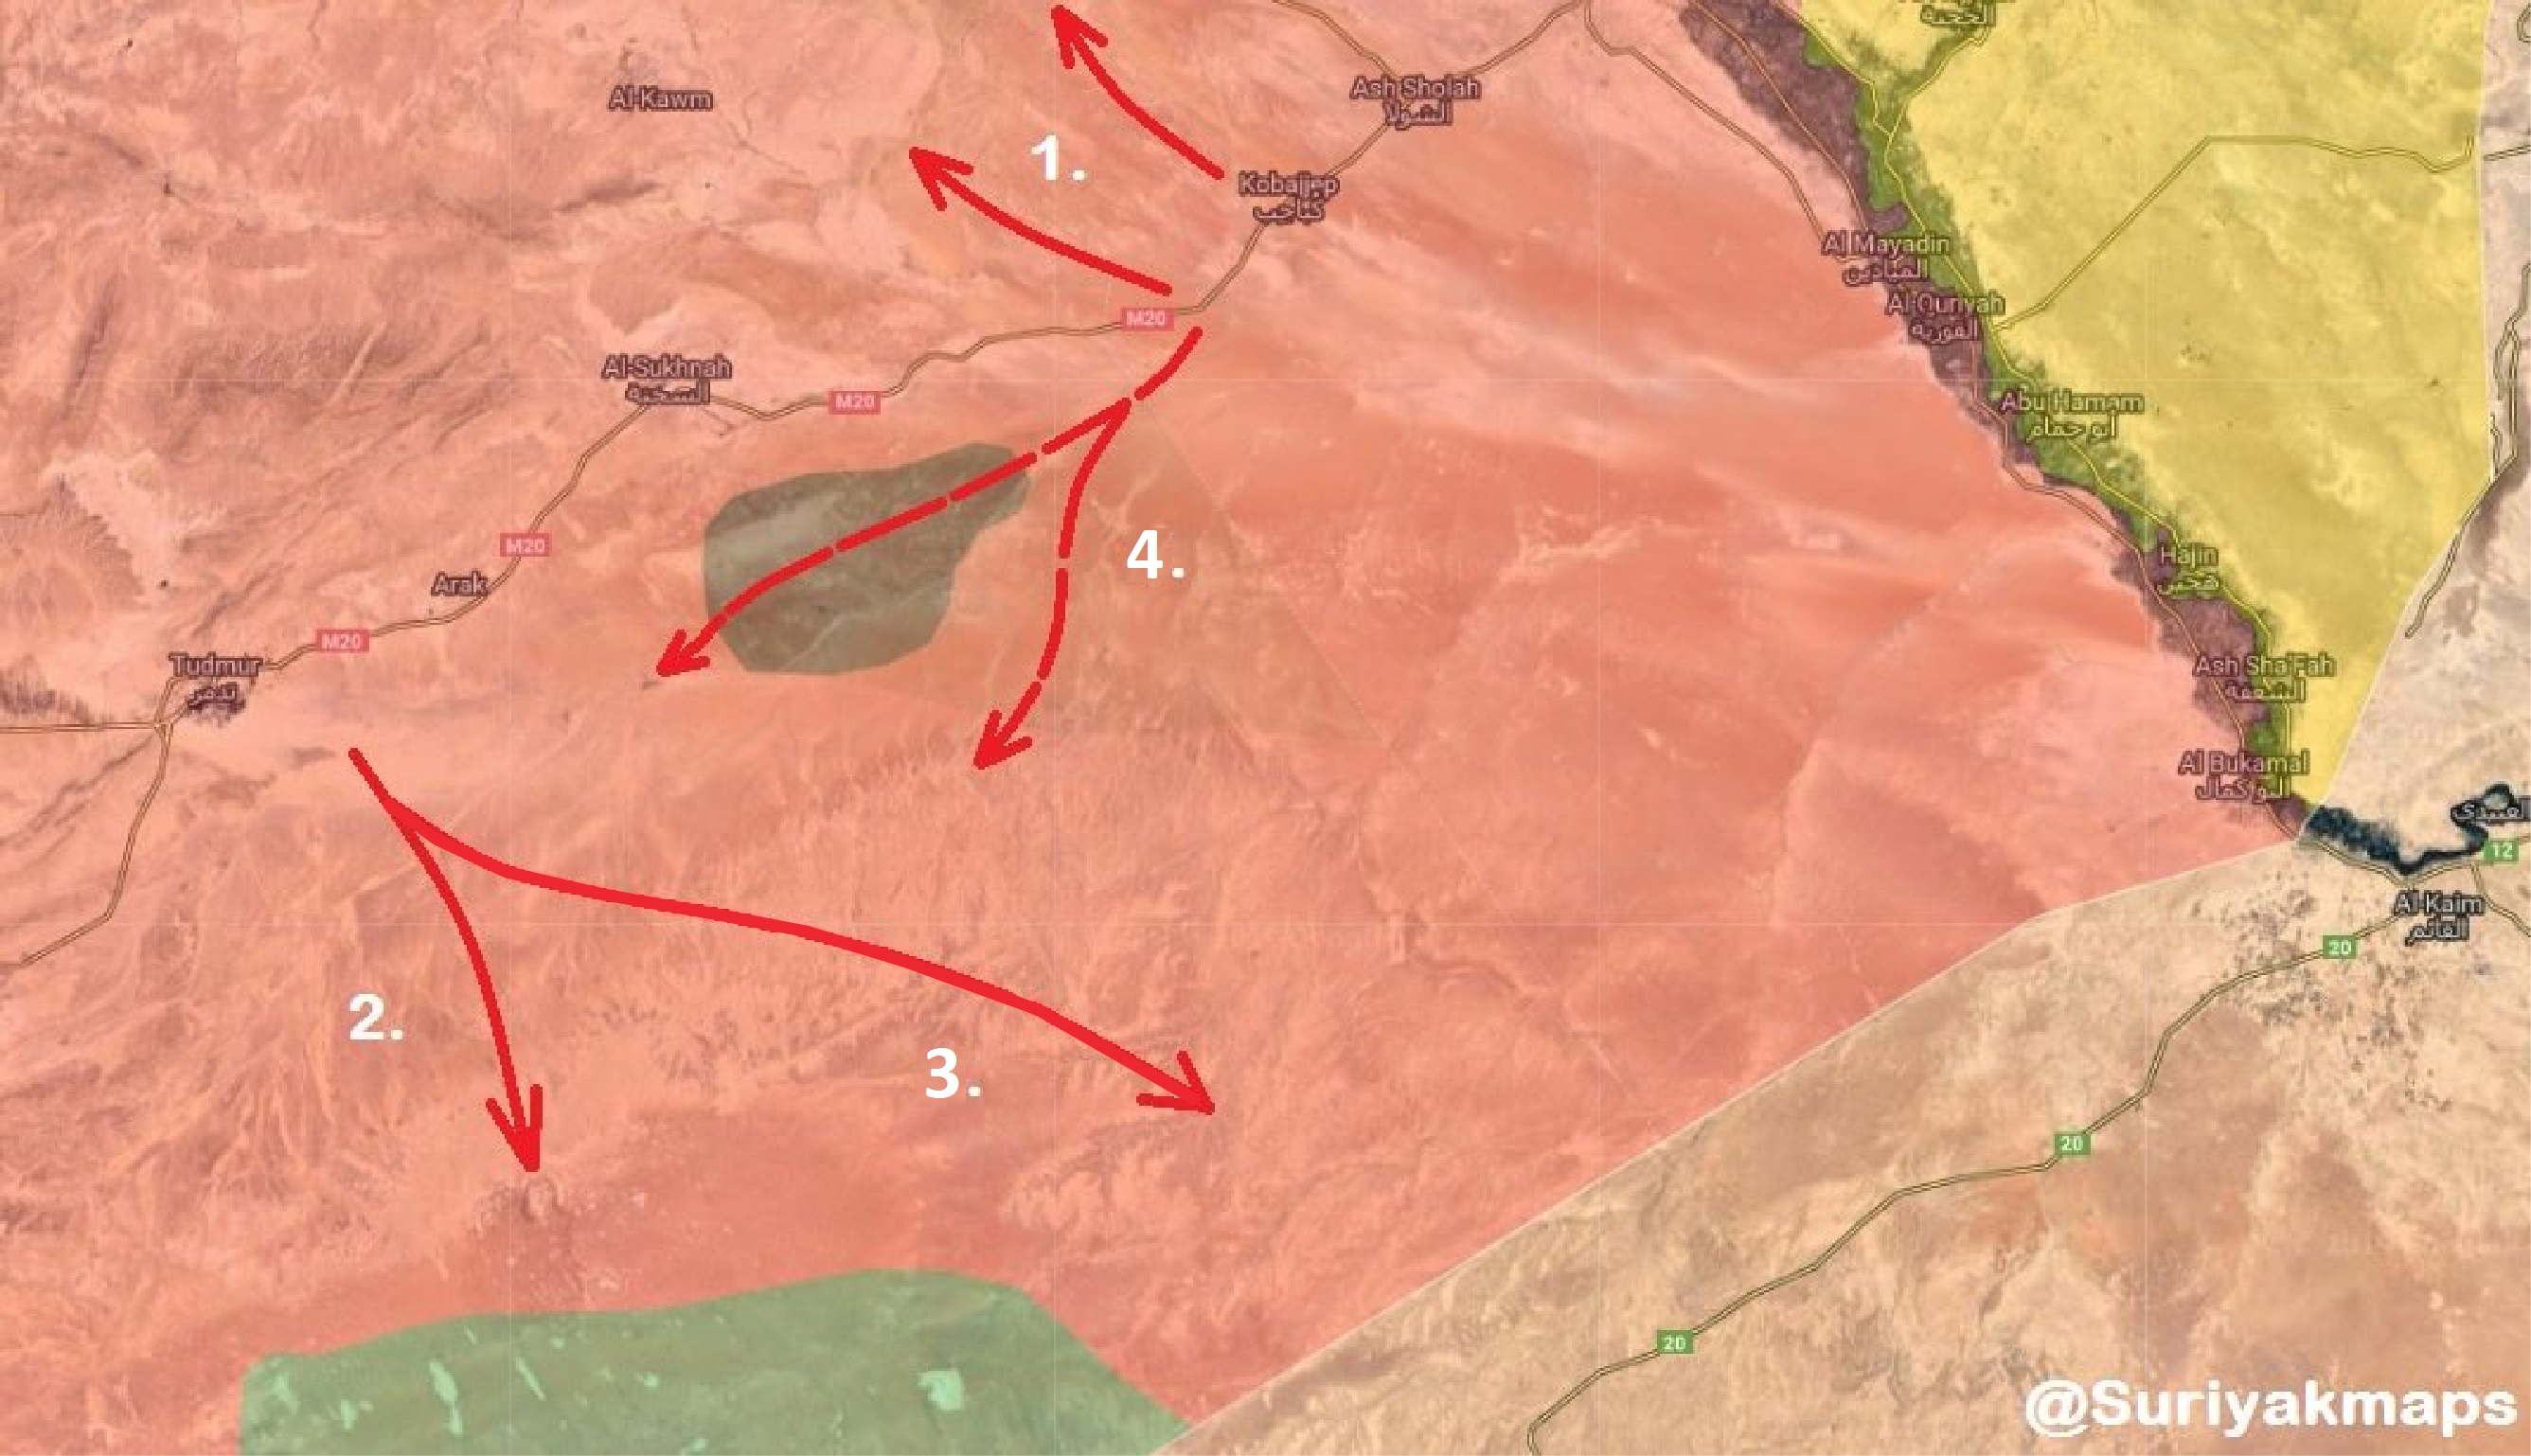 Syrian Army Launches Major Combing Operation Between Damascus, Deir Ezzor, Raqqa & Homs